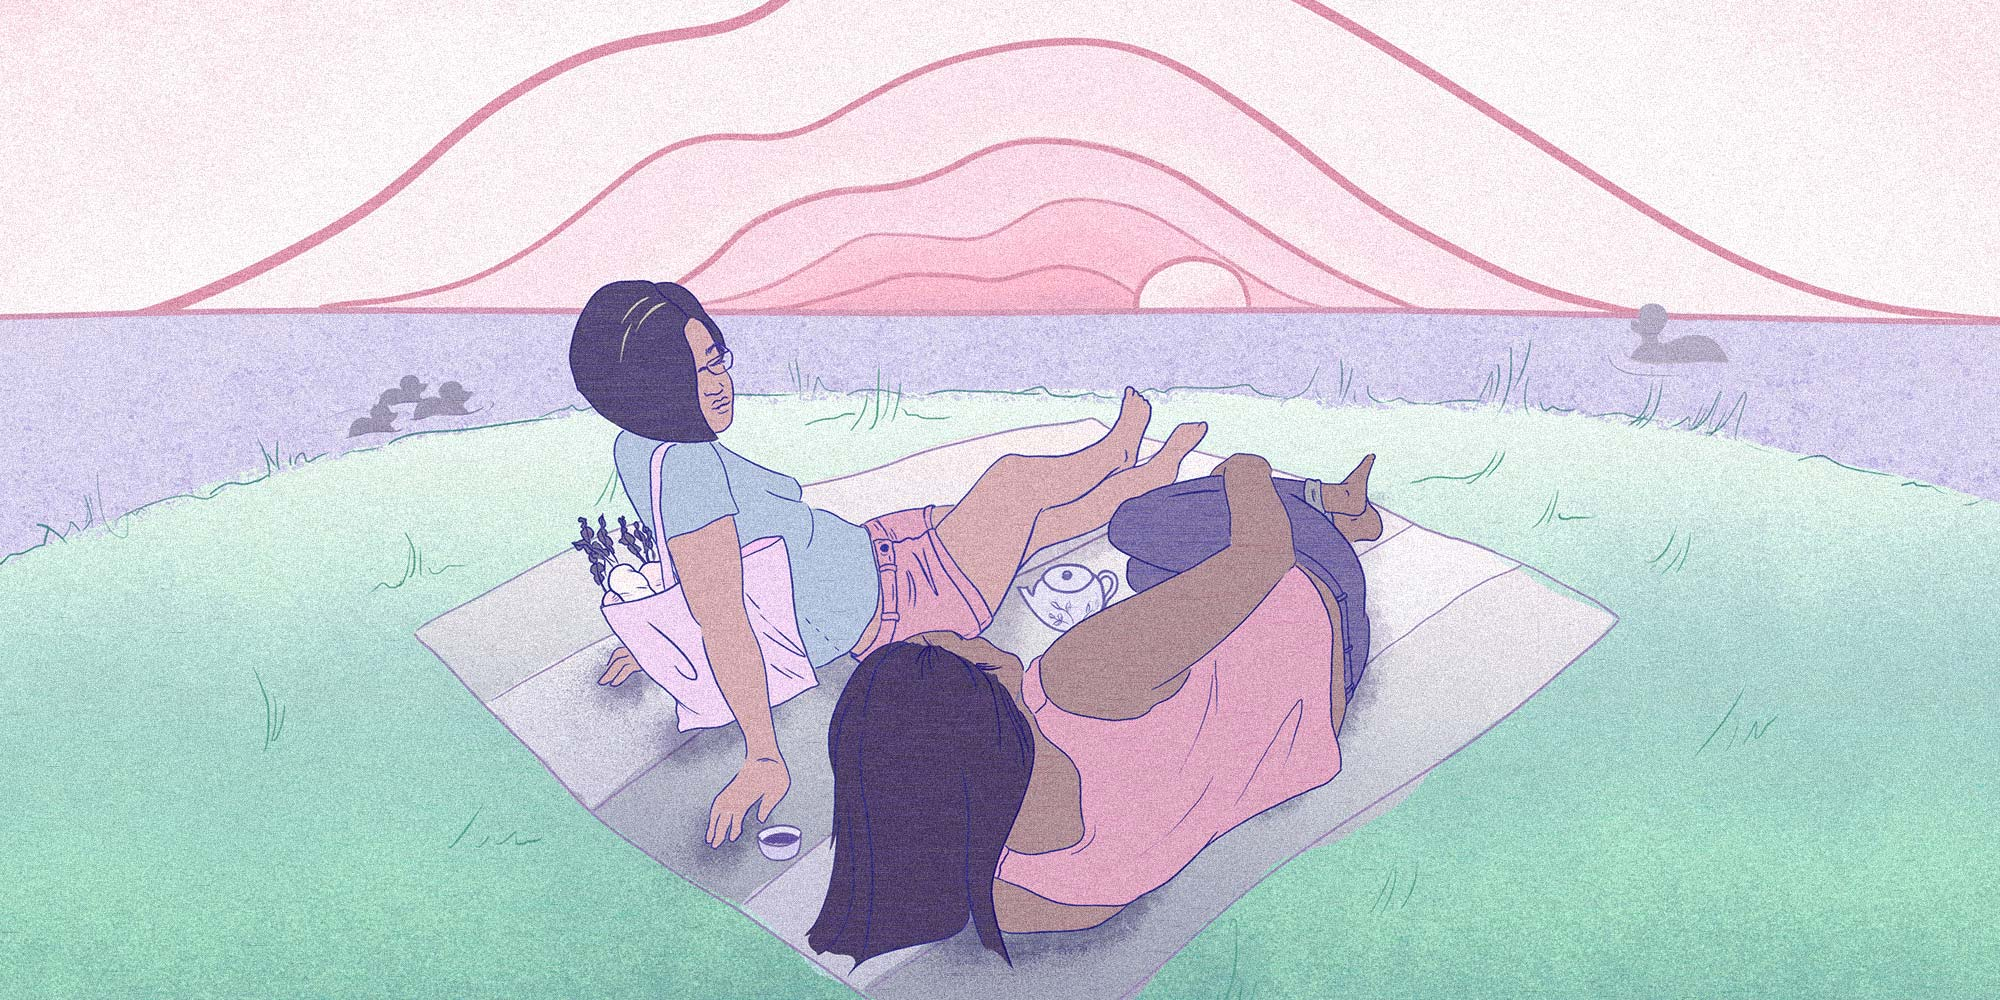 two queers laying on a blanket on the grass in a park near the water, overlooking a pink sunset with a tea set